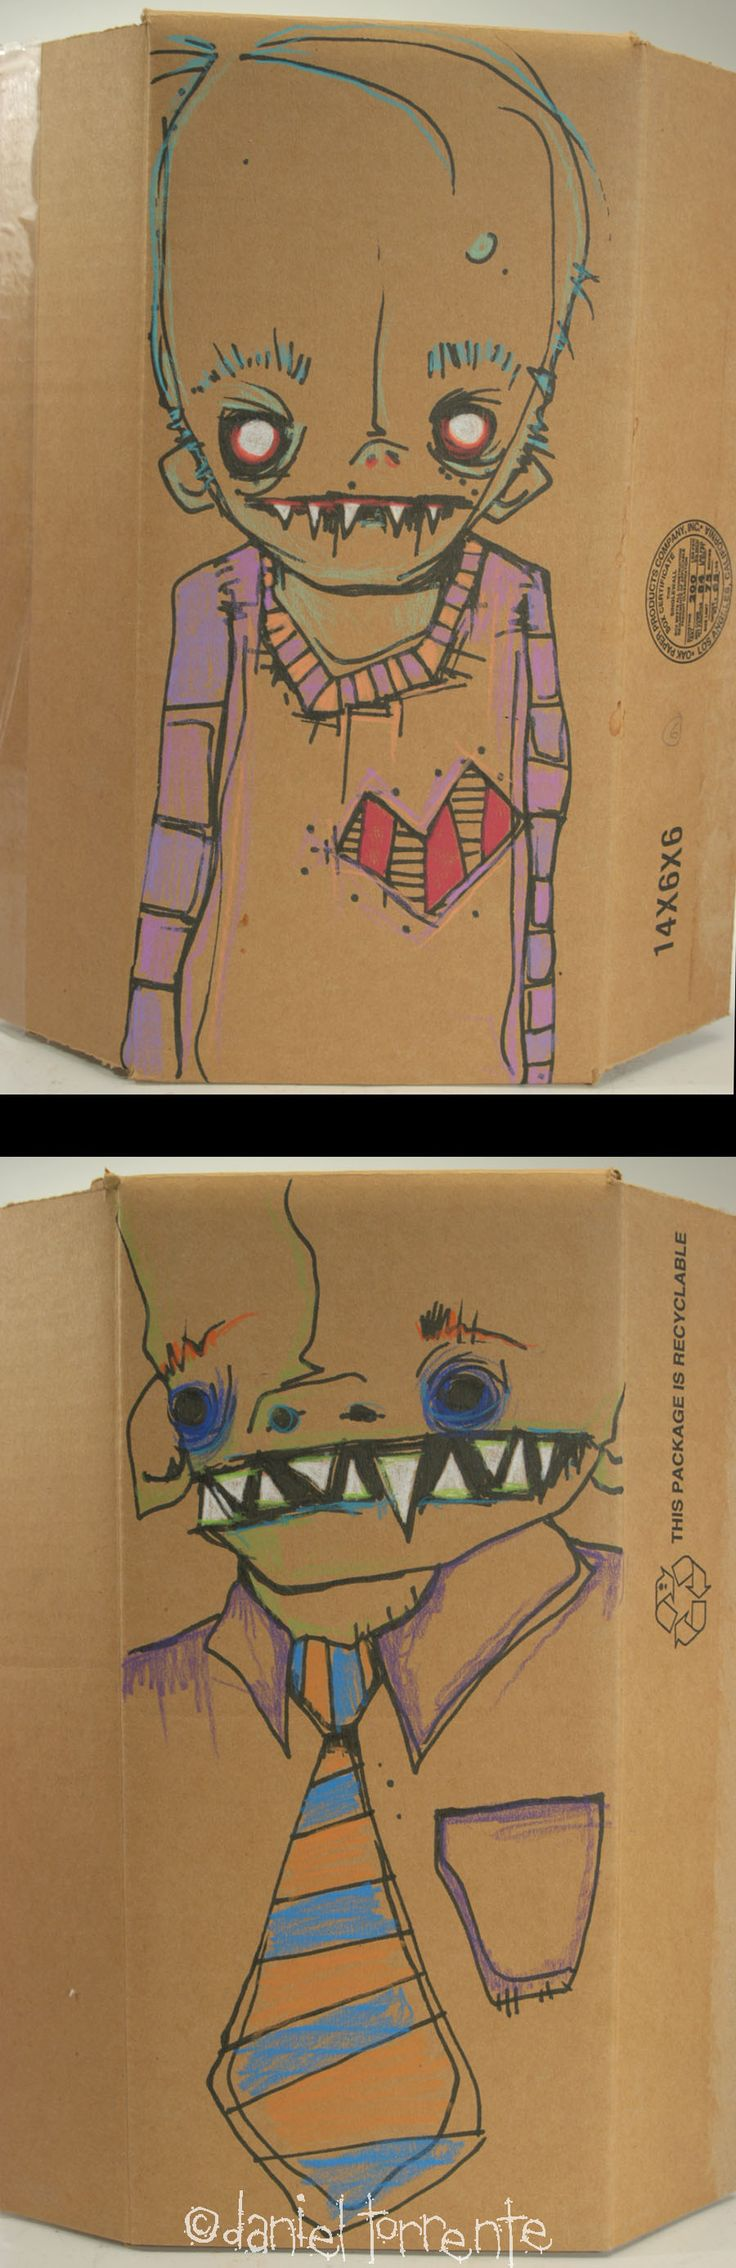 736x2268 52 Best Cardboard Boxes With Artwork Drawn By Daniel Torrente